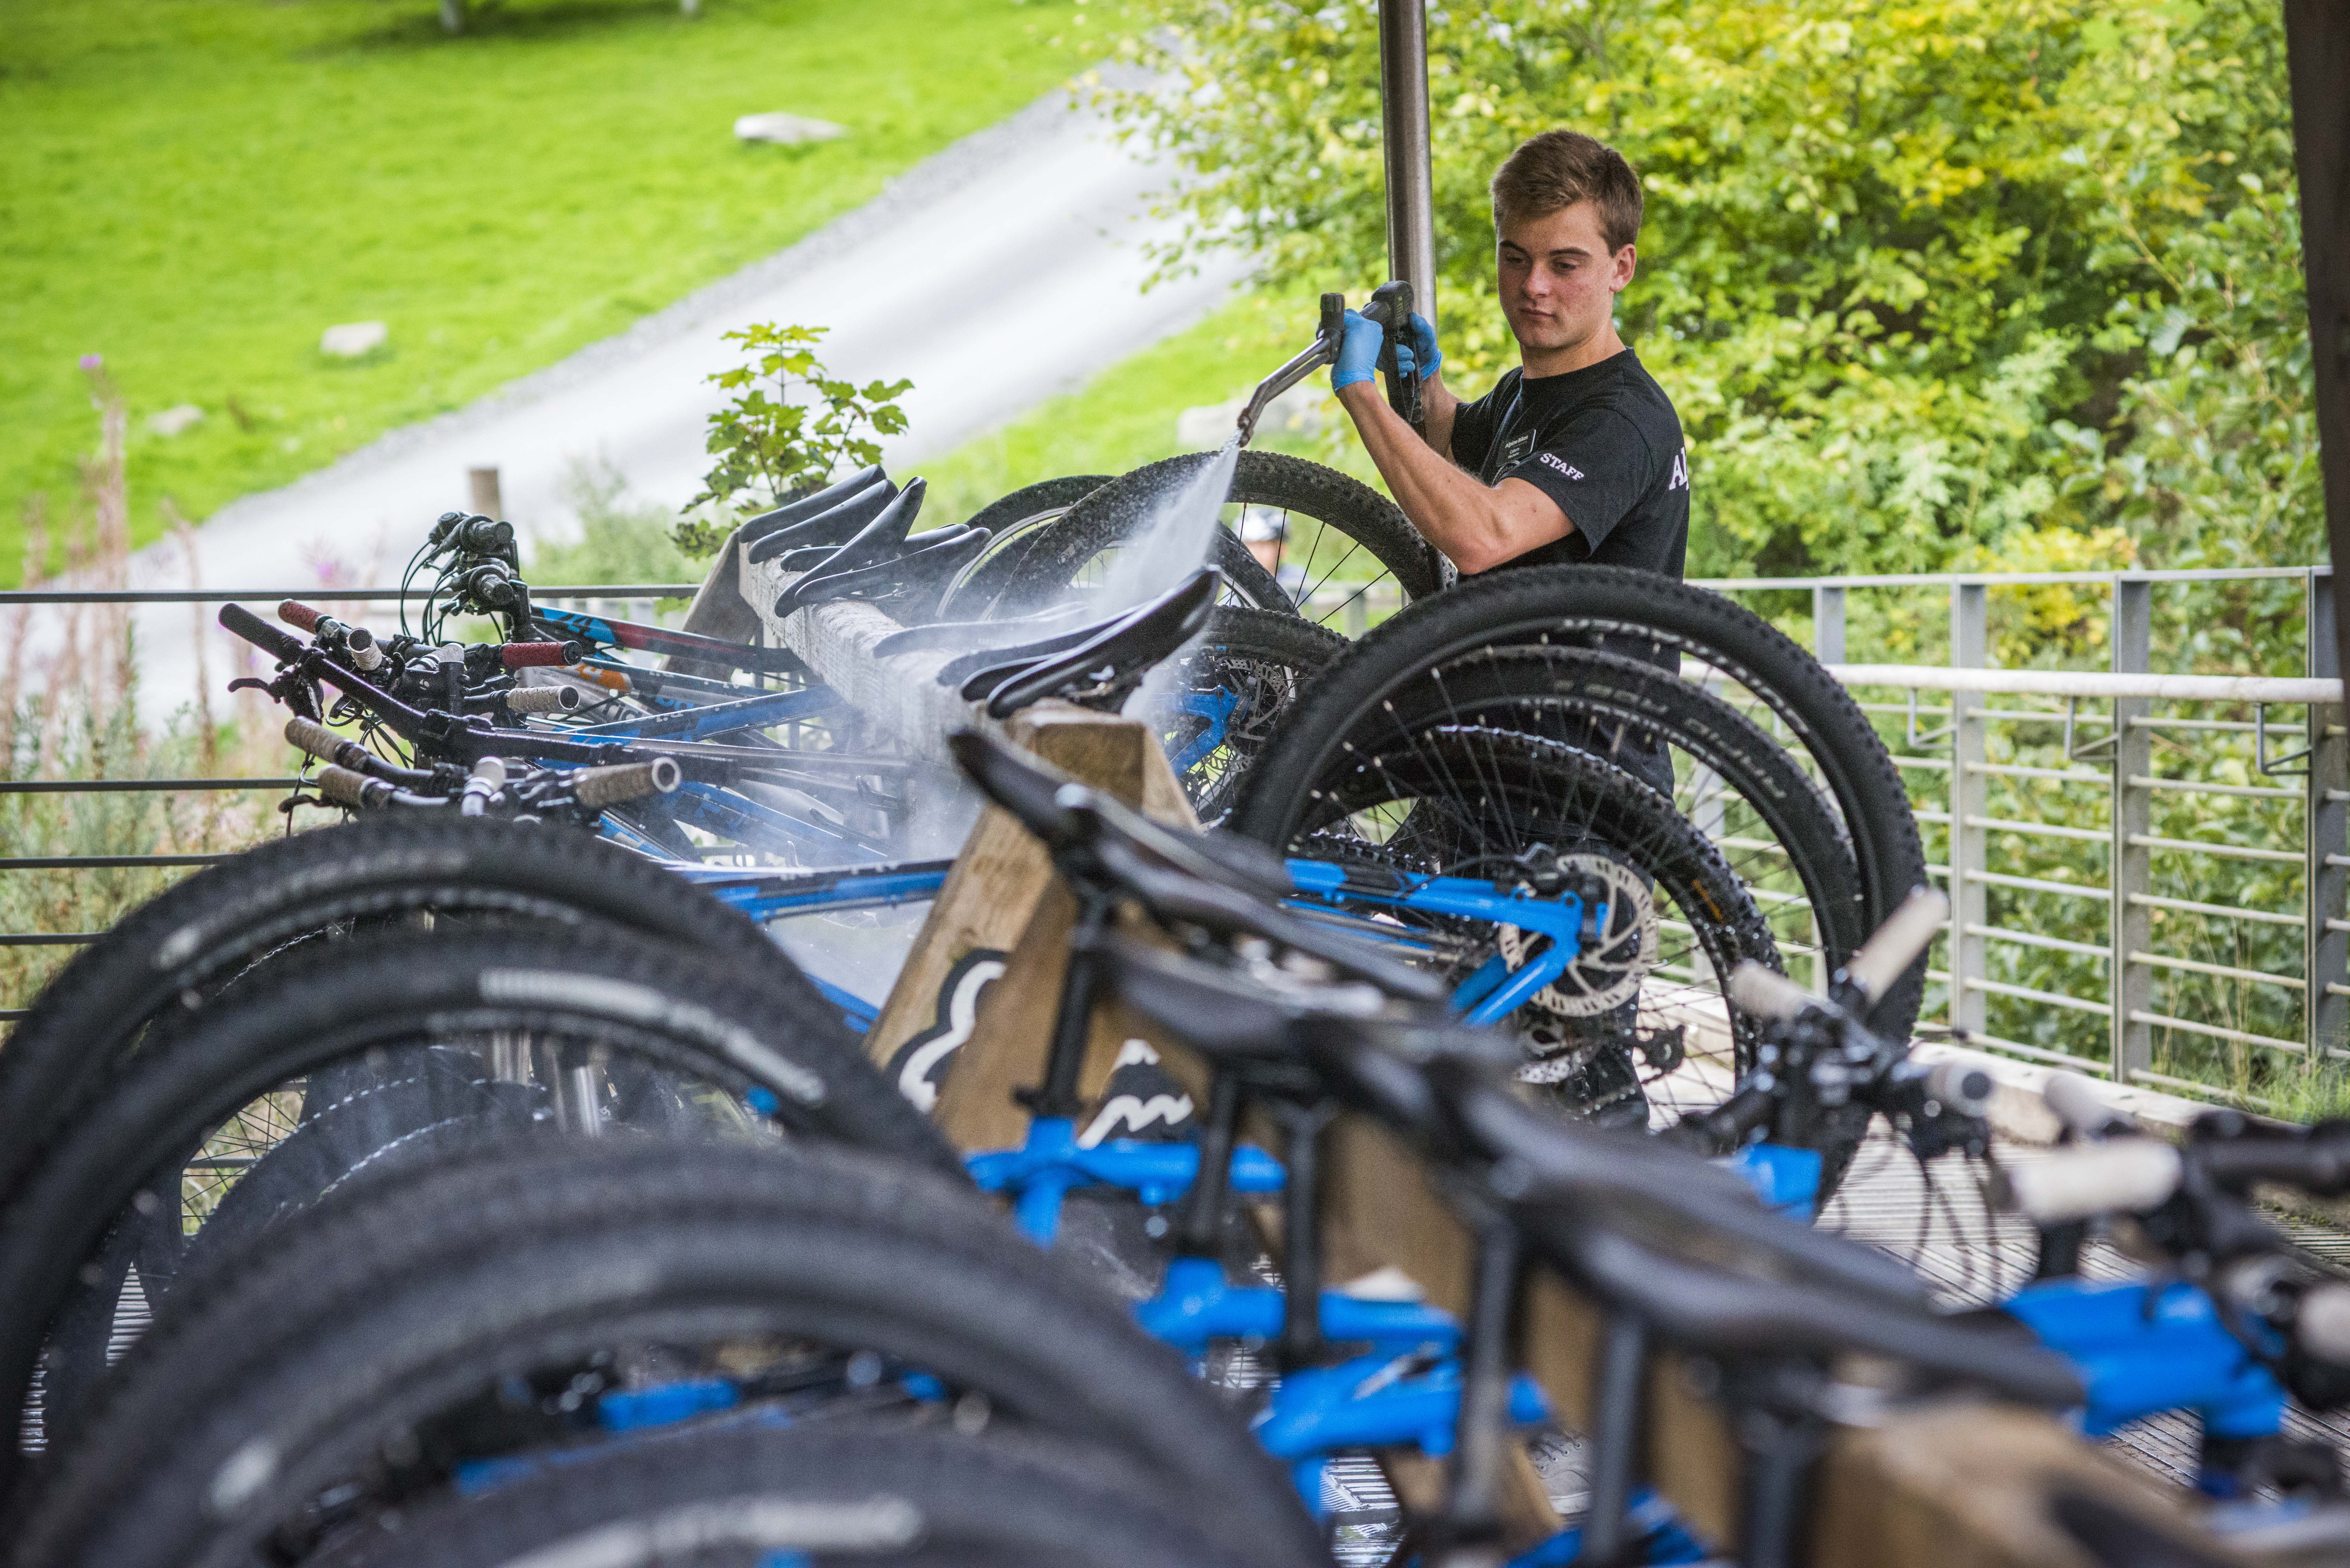 A man uses a pressure washer to clean bikes at Glentress